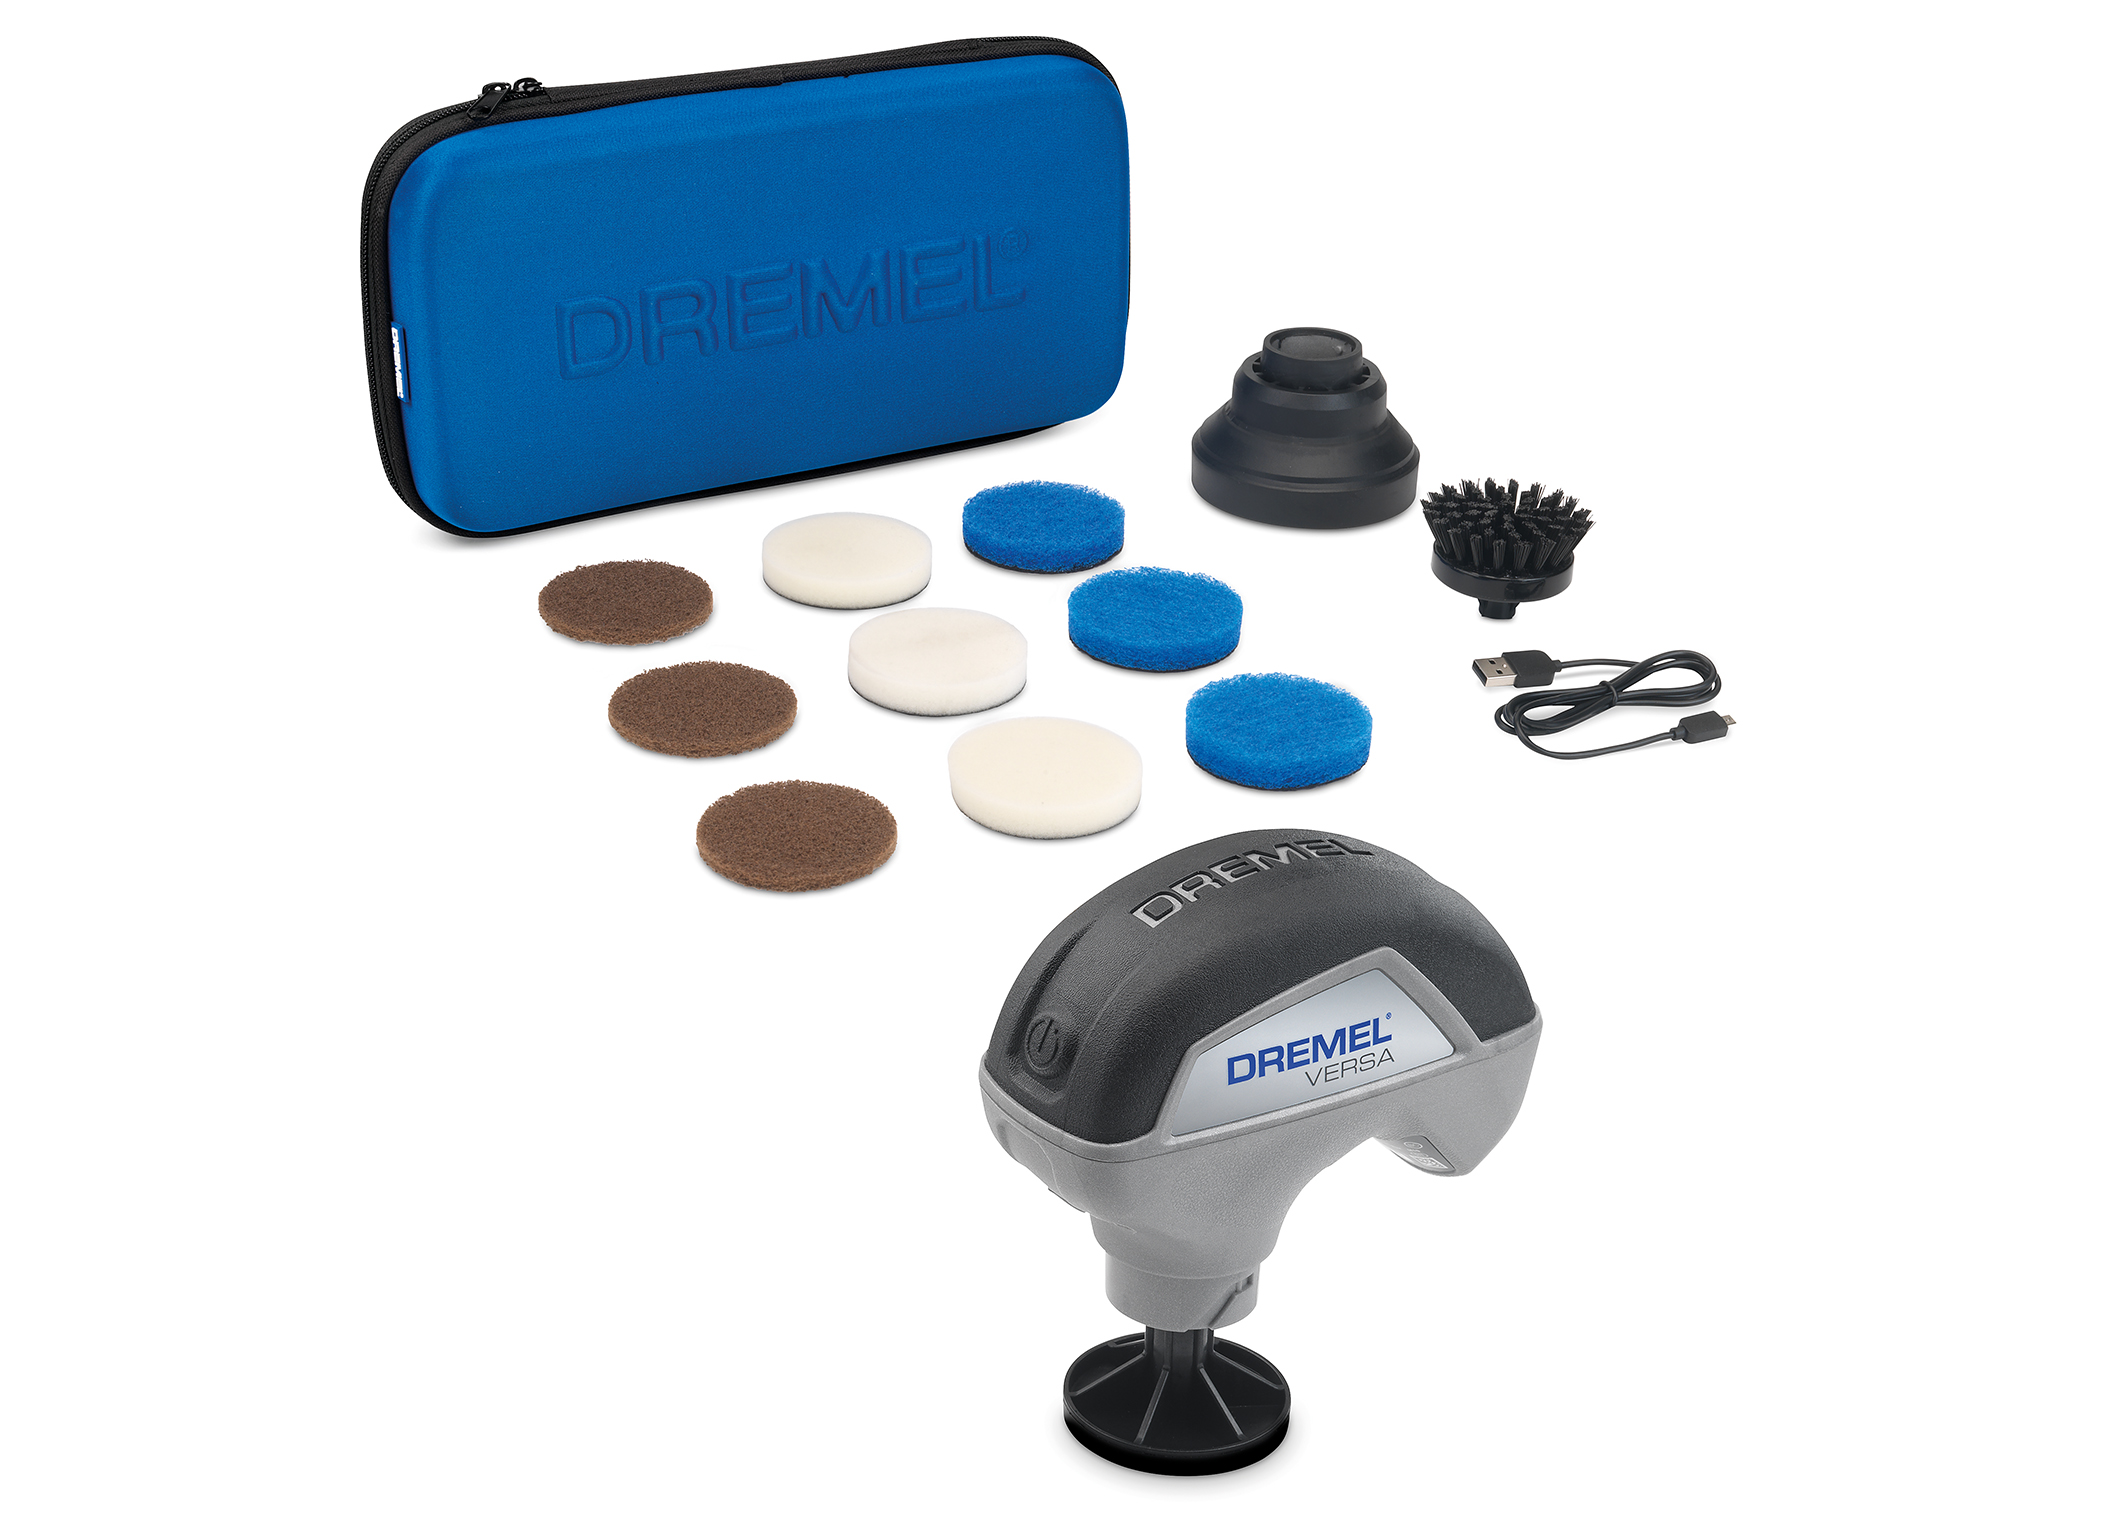 Dremel further taps into product segment for households: Versatile power scrubber Versa.